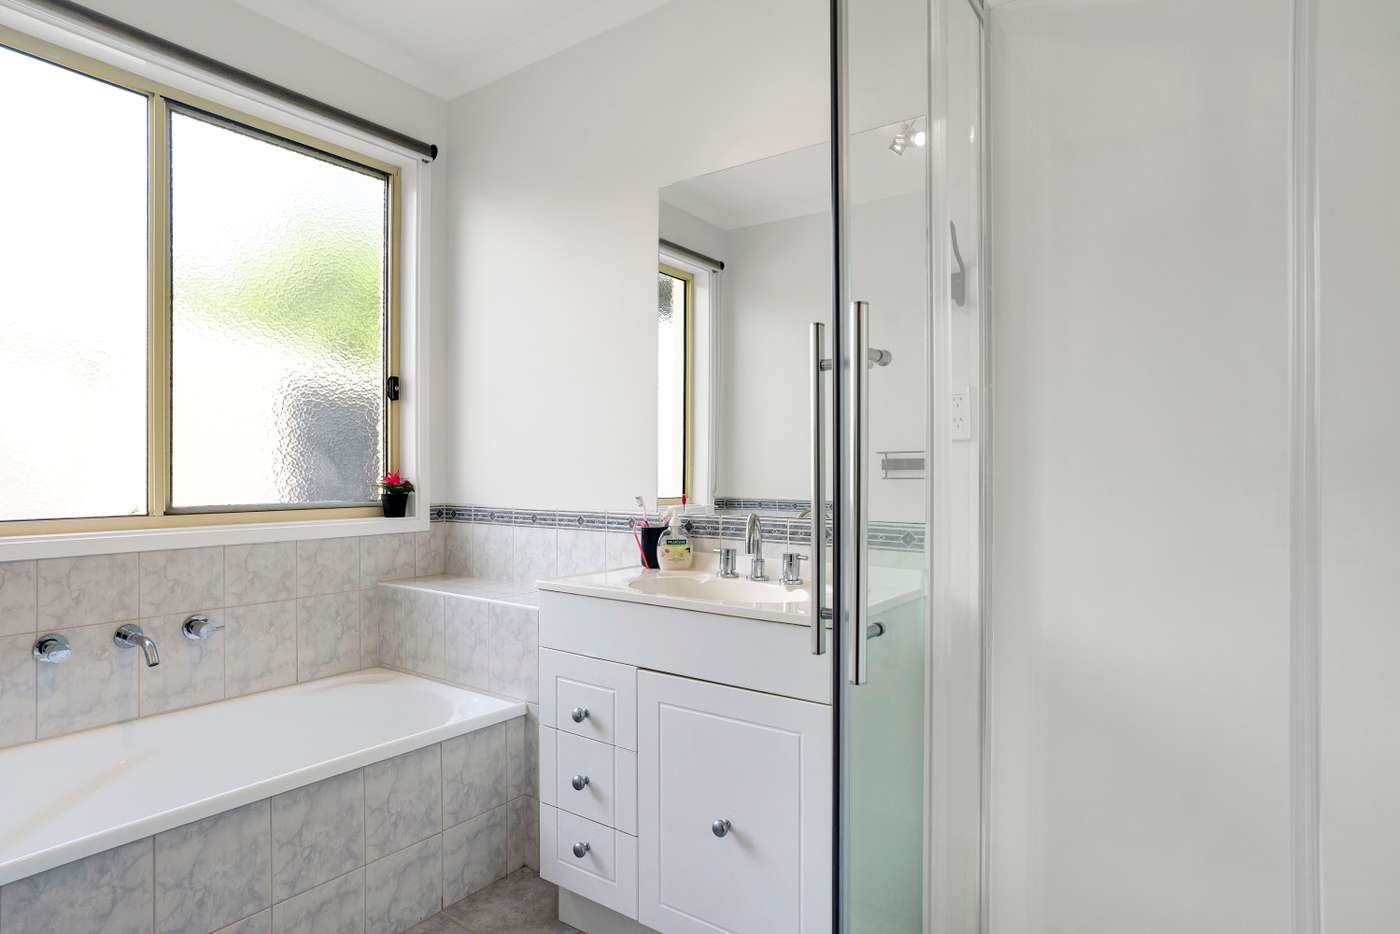 Sixth view of Homely house listing, 111 Bethany Road, Hoppers Crossing VIC 3029